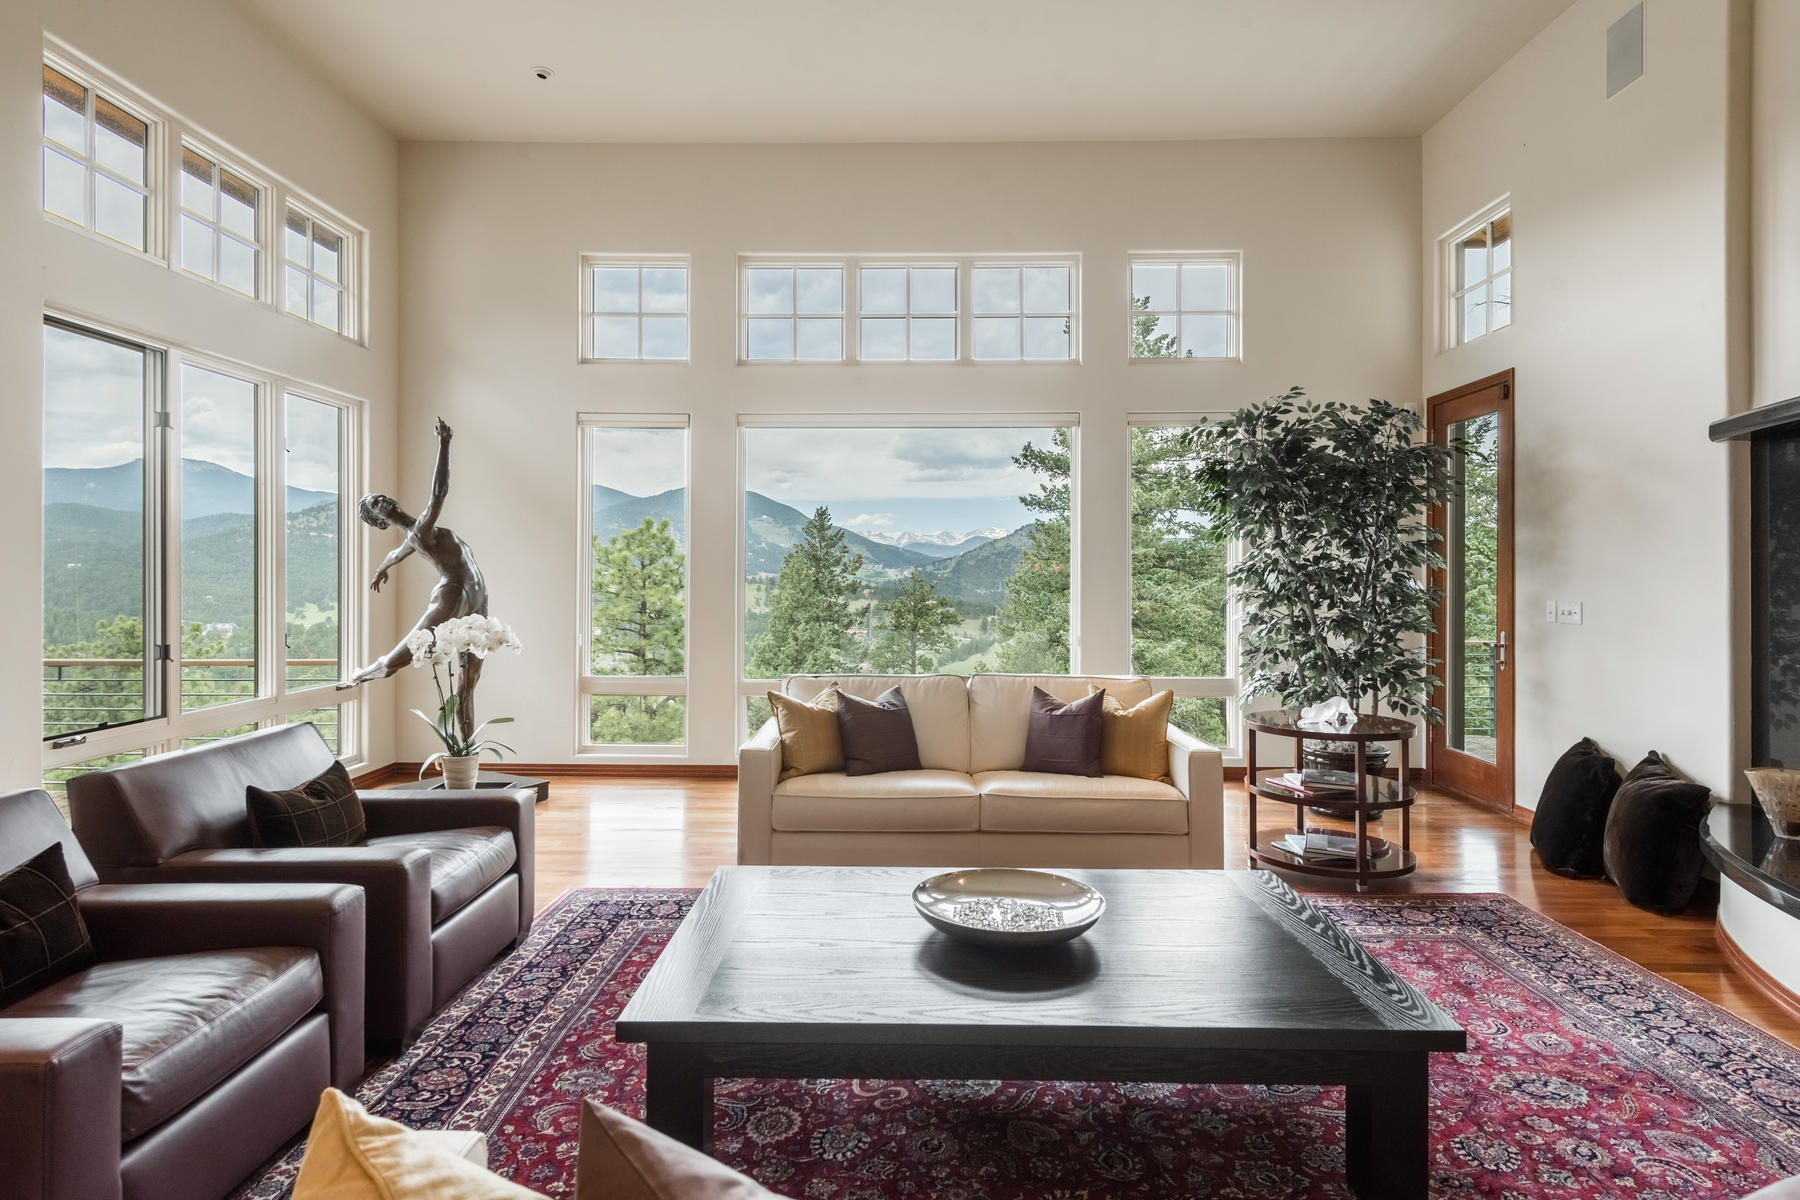 Single Family Home for Active at Modern & Bright! 414 Humphrey Drive Evergreen, Colorado 80439 United States